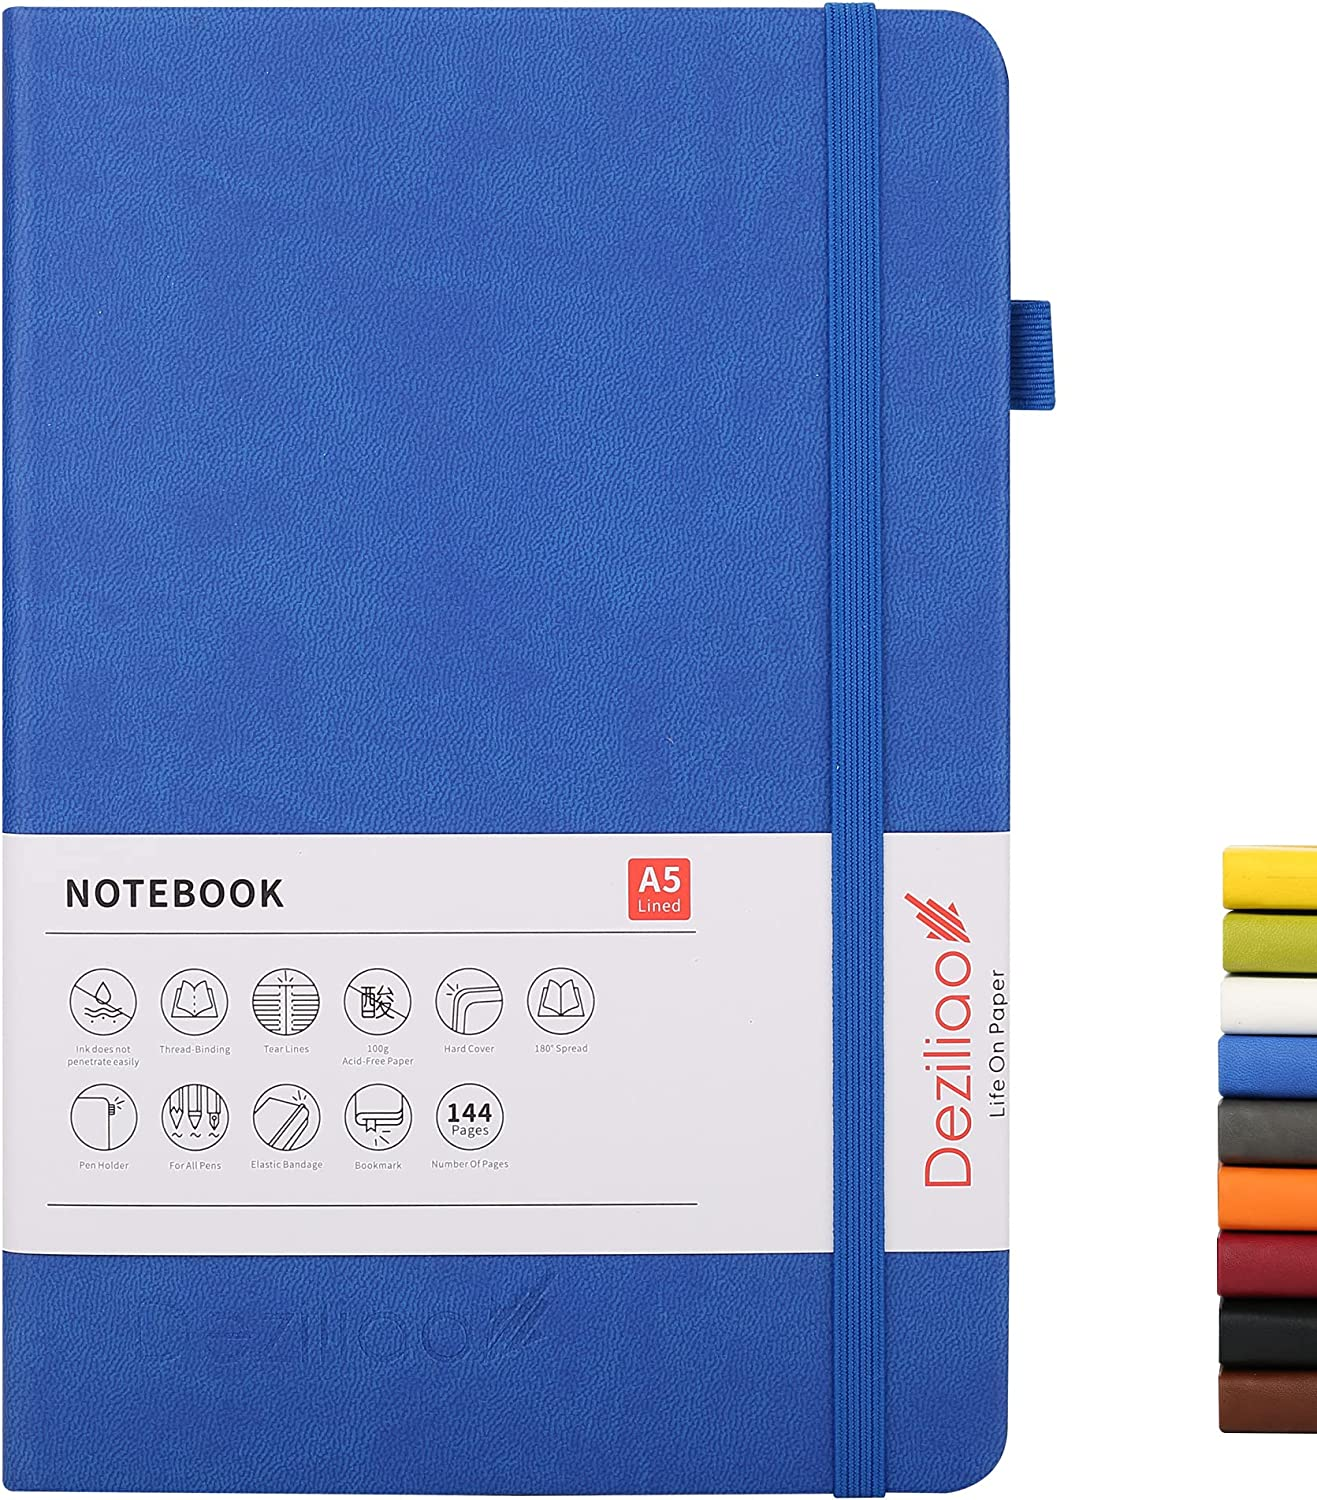 Deziliao Lined Journal Notebooks with Loop Safety and trust Pen Hardcover Mesa Mall Notebo